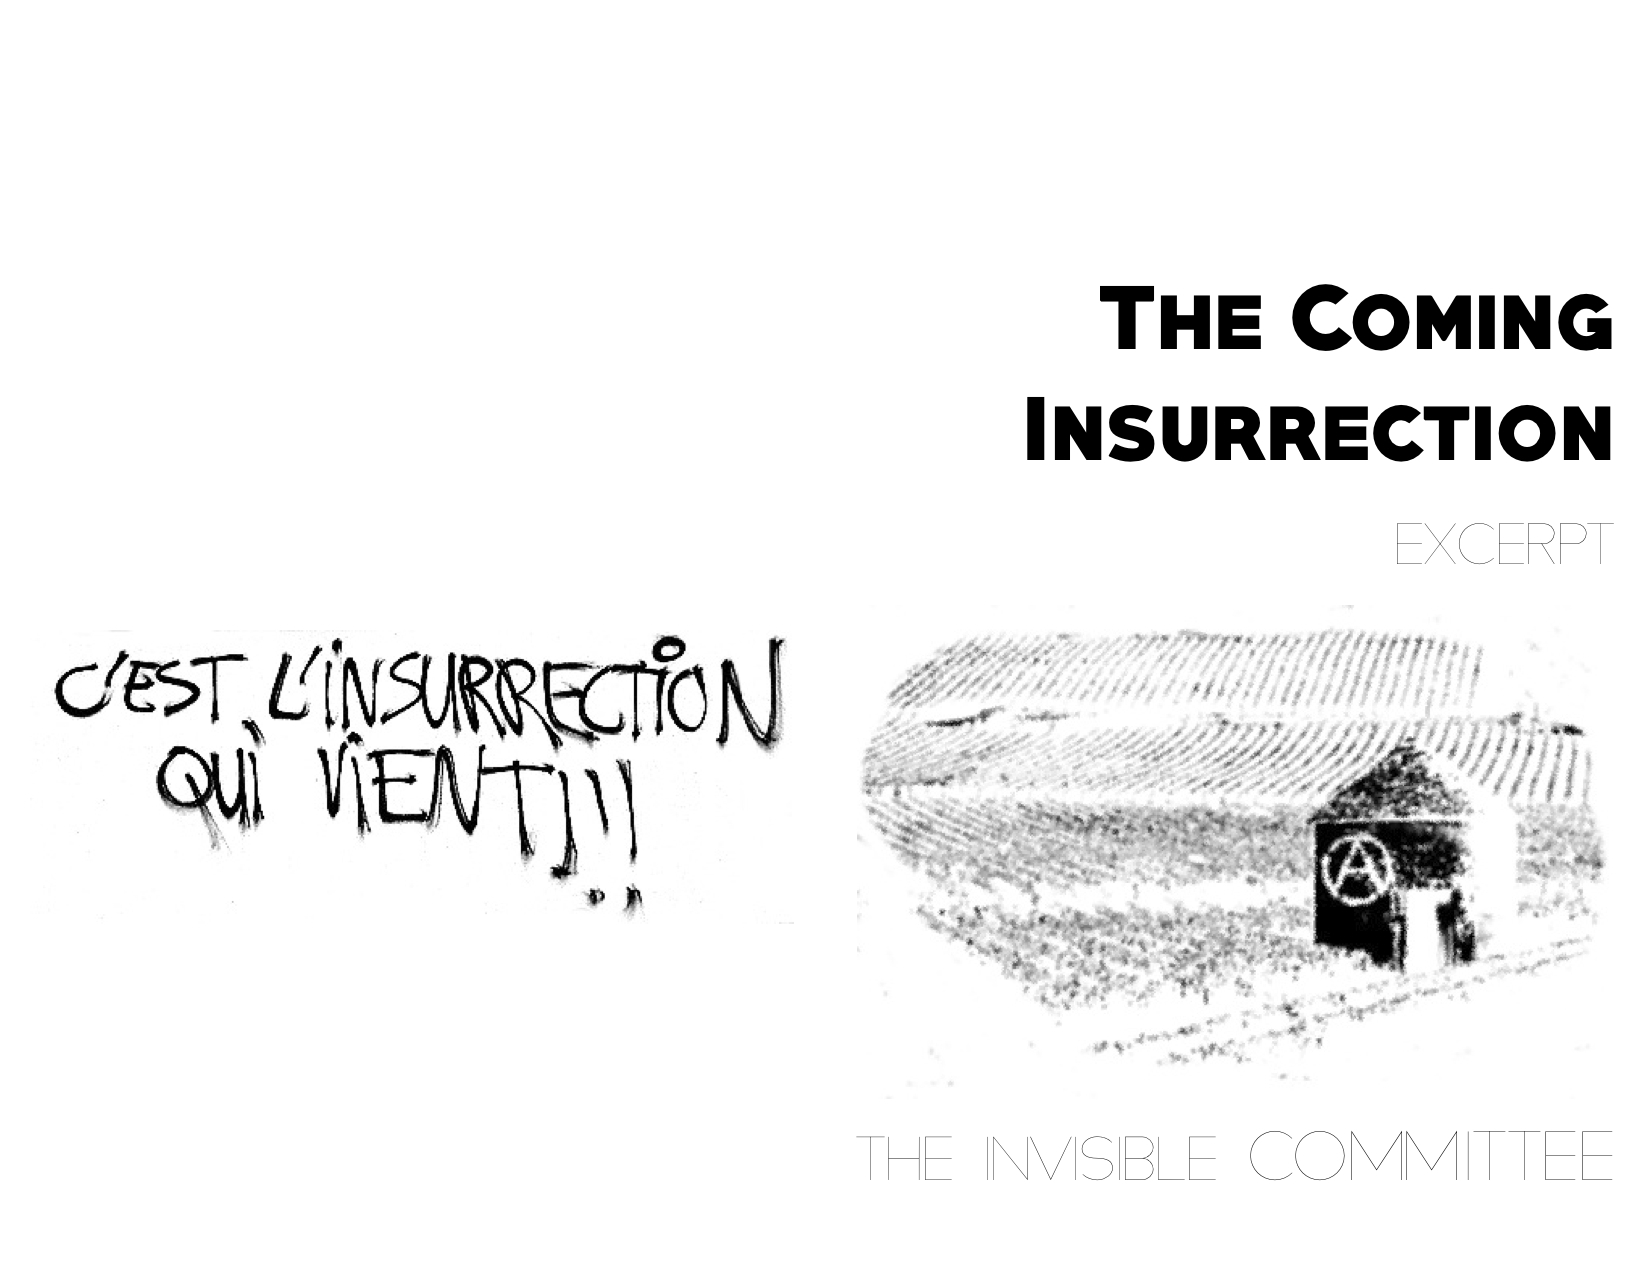 cominginsurrectionexcerpt